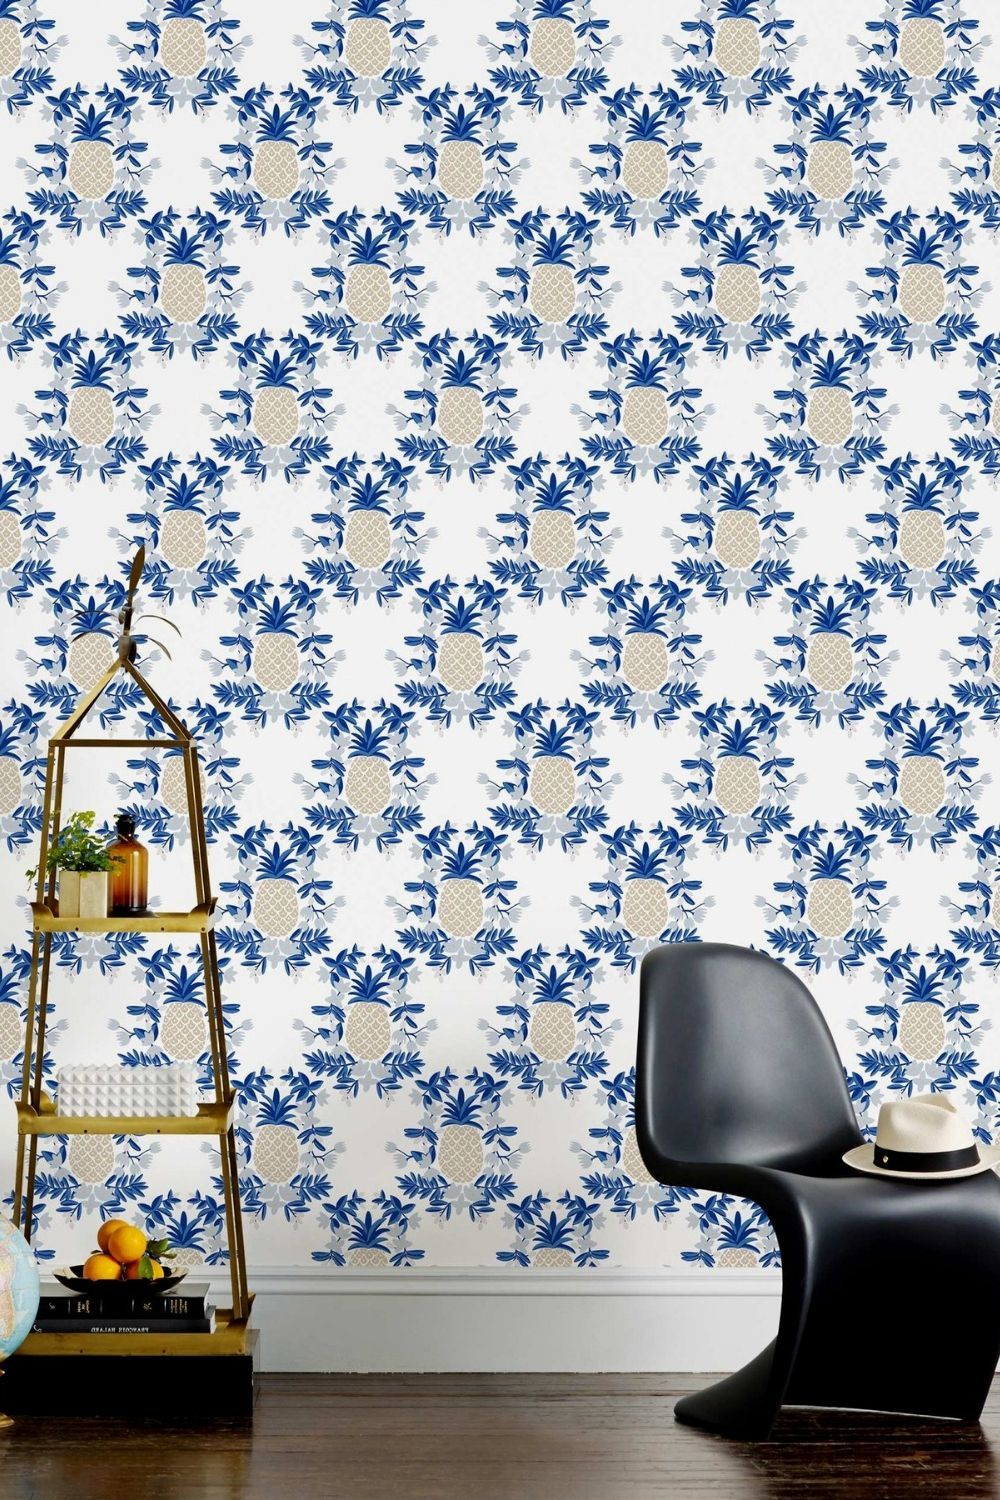 Gorgeous Blue Wallpaper Ice Everything You Need To Know 834 Bluewallpaper Wallpaperrocks Designerwallpape Blue Rooms Inspire Me Home Decor Blue Wallpapers